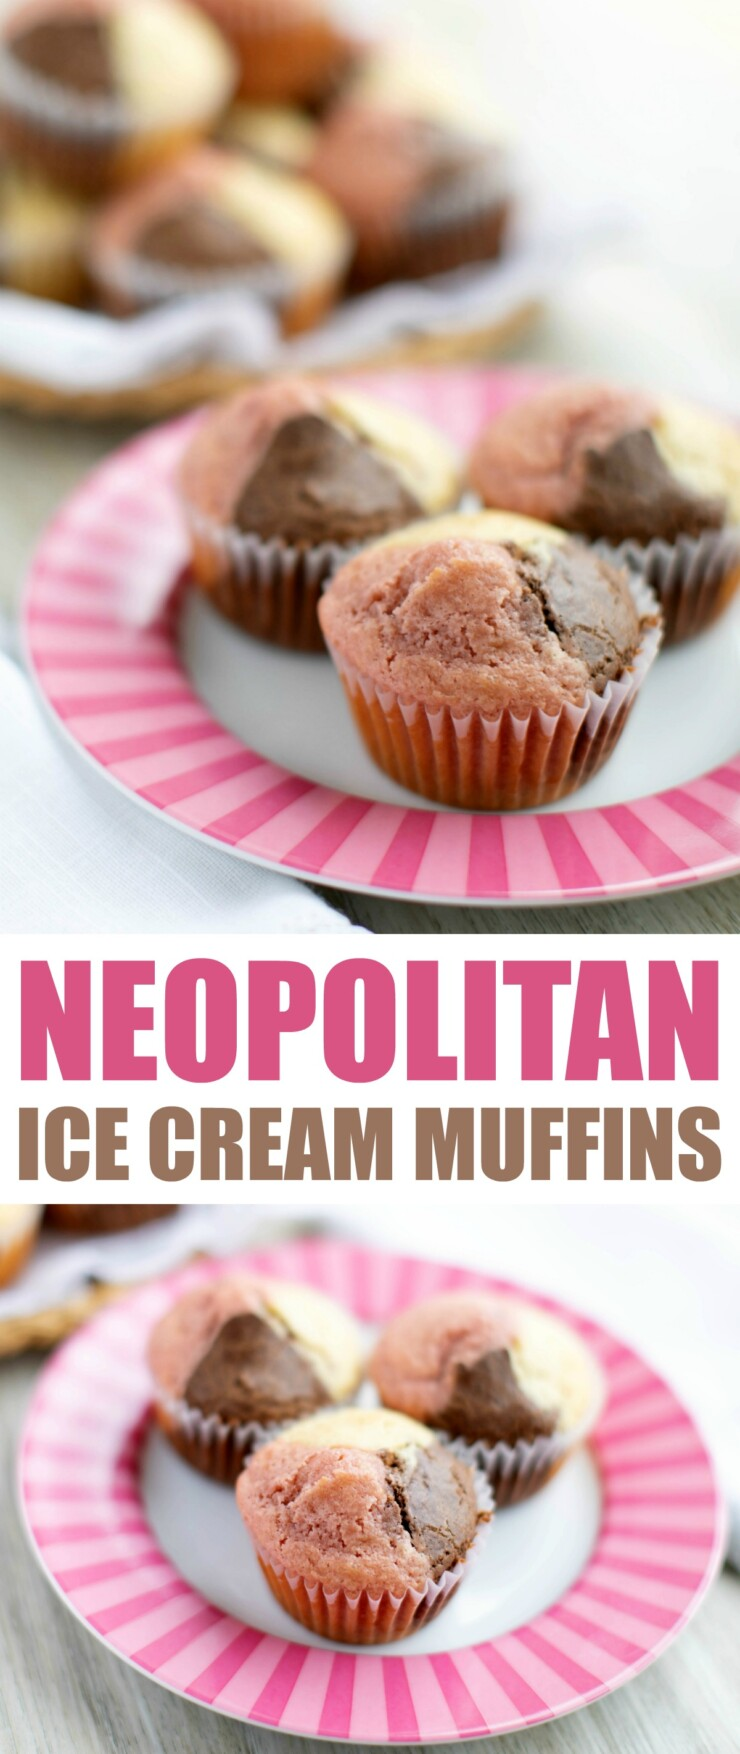 These whimsical Neapolitan Ice Cream Muffins are fluffy and full of the amazing flavours of  chocolate, vanilla and fresh strawberry.